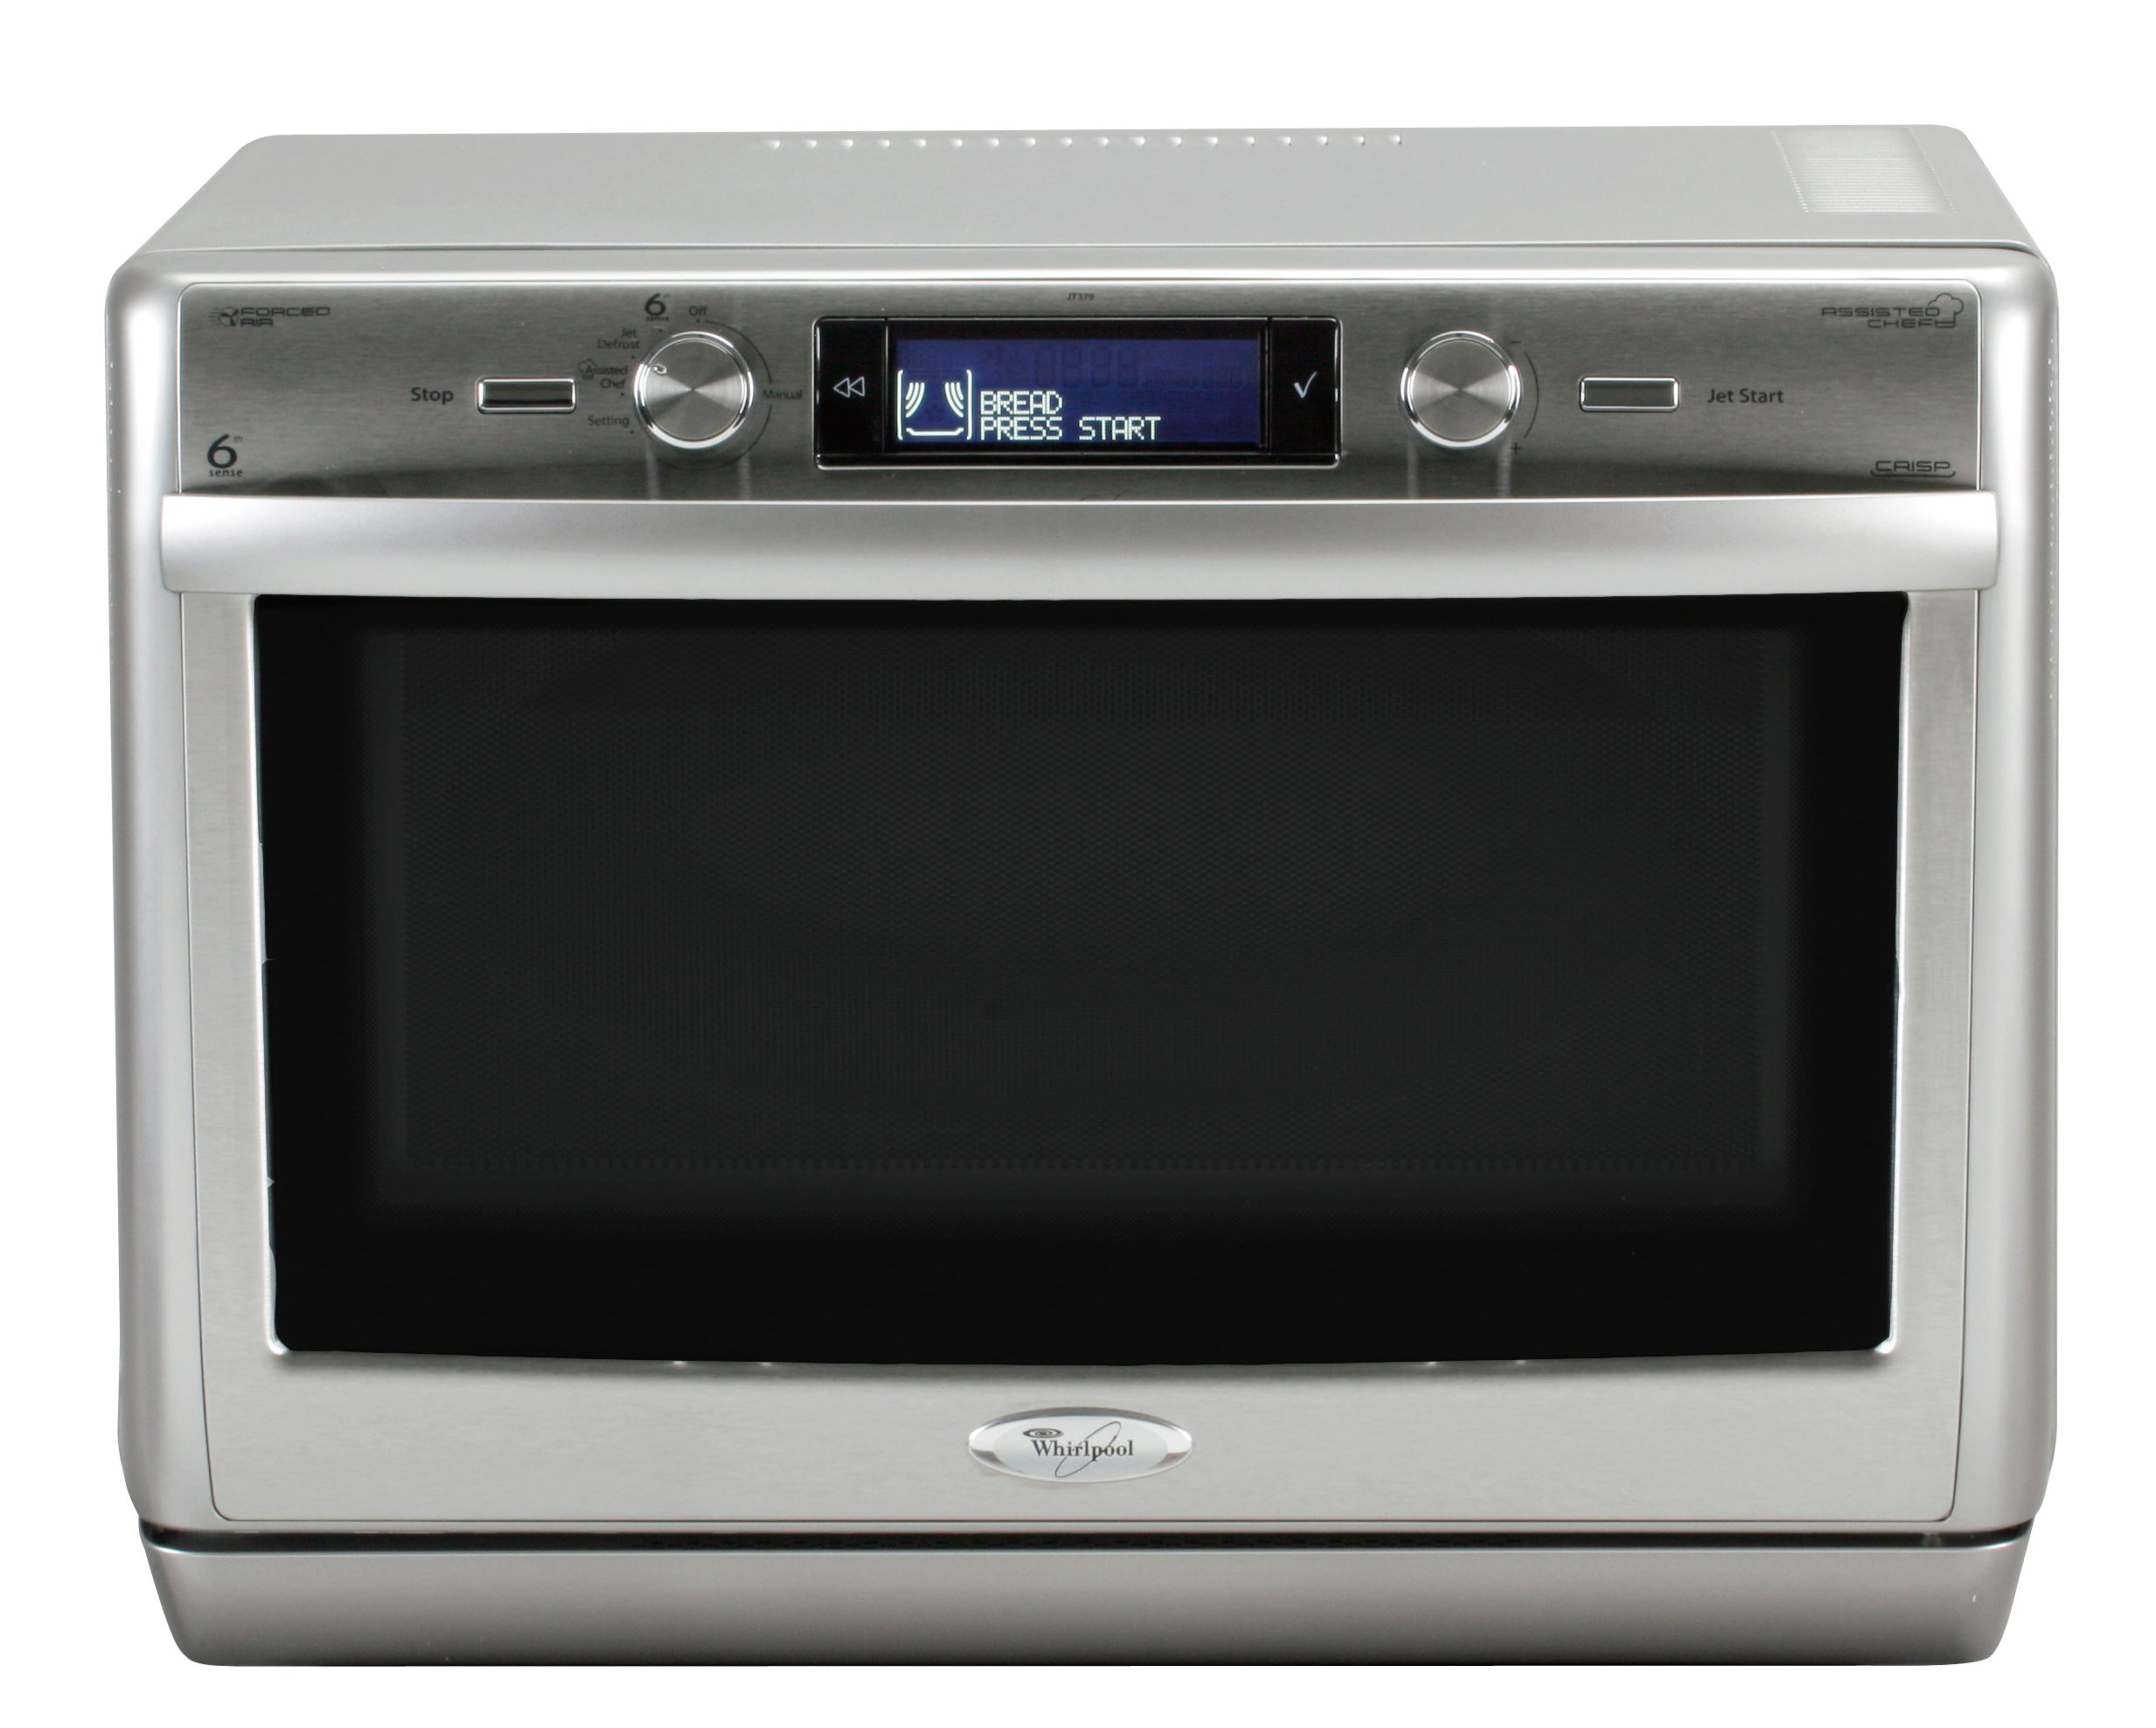 Ricette forno microonde whirlpool 6 senso